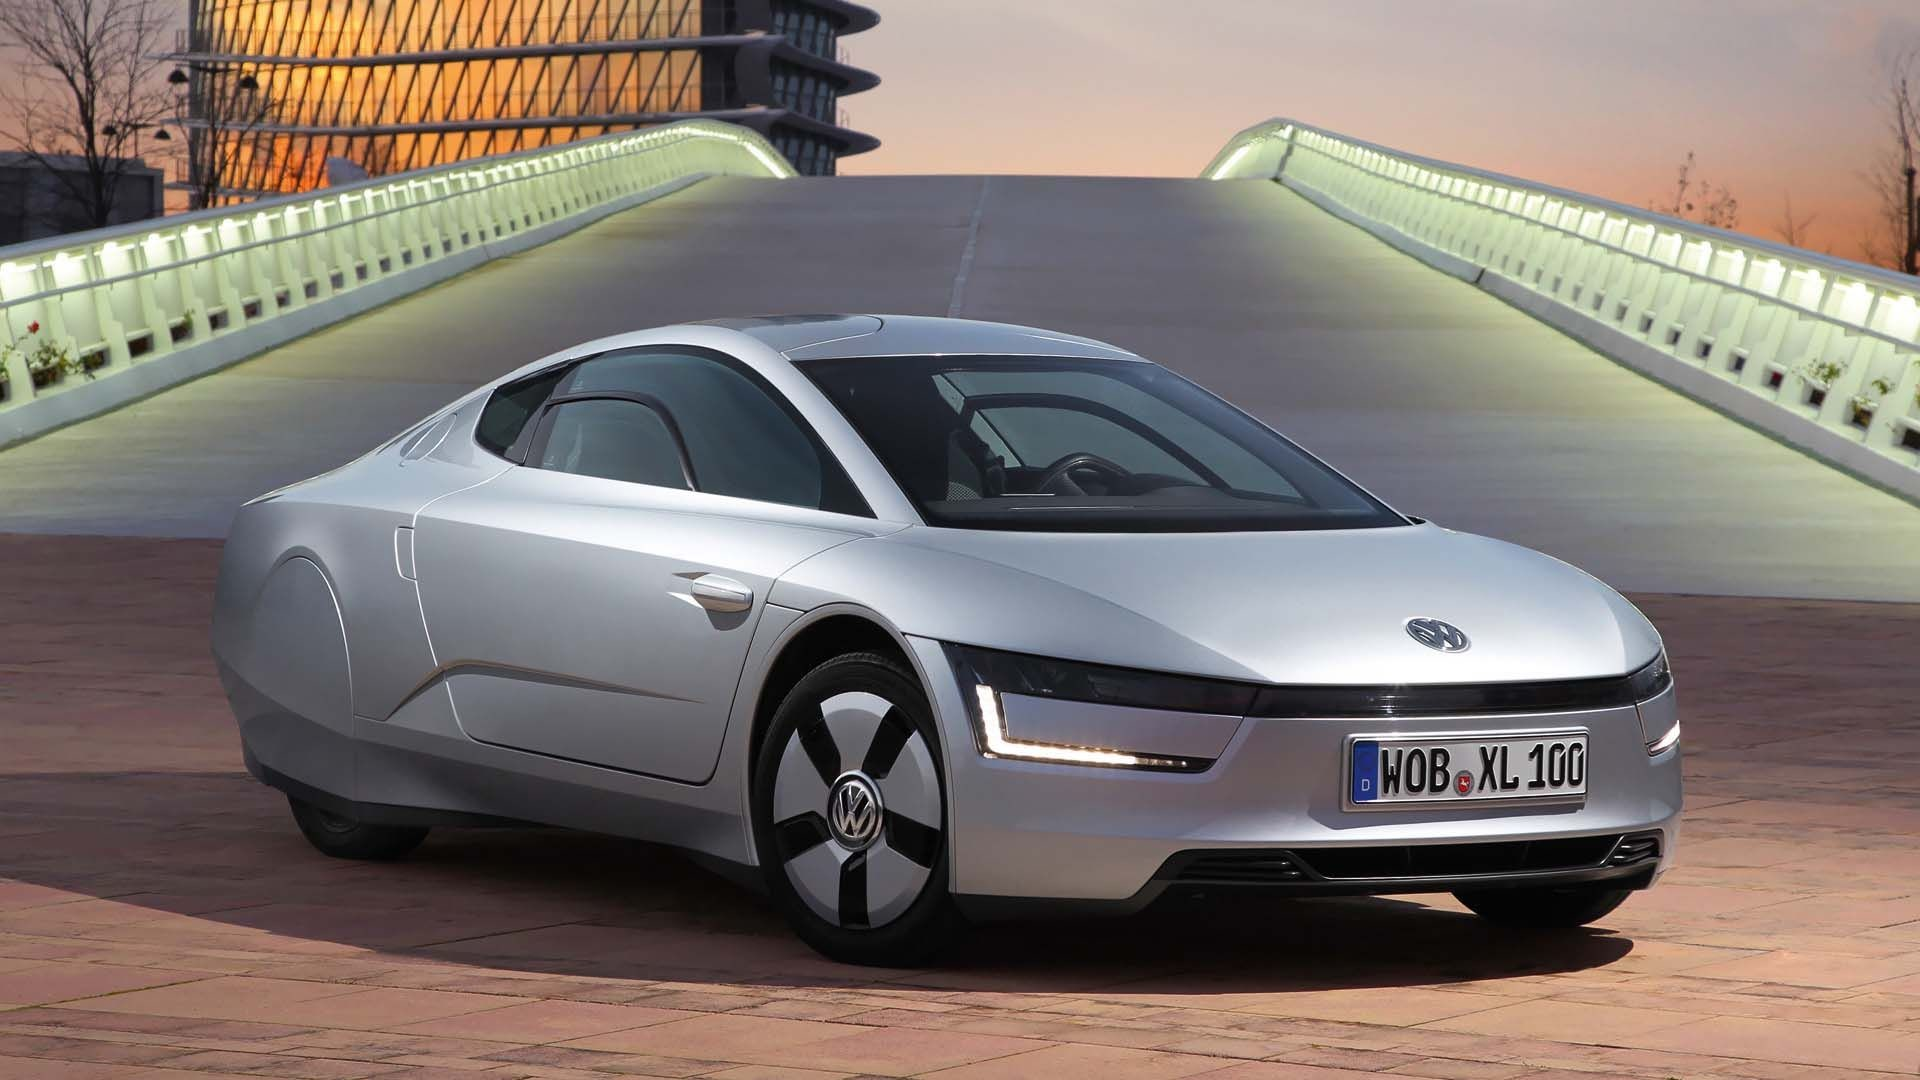 Res: 1920x1080, Volkswagen Xl1 - The Silver Hawk | HD Volkswagen Wallpaper Free Download ...